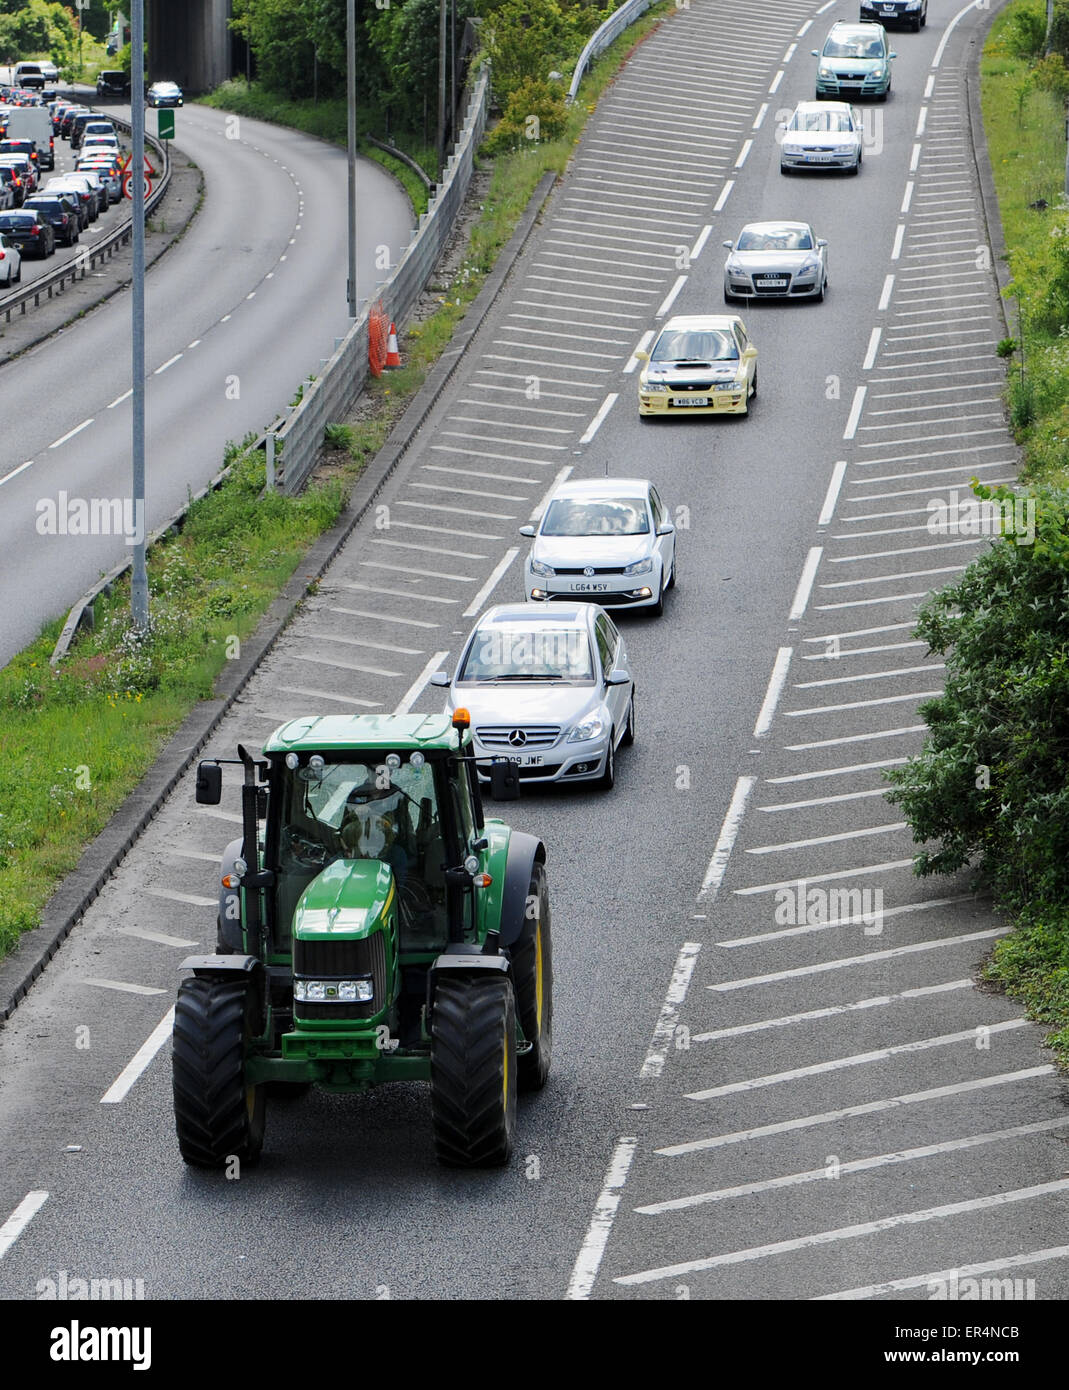 Big Slow Moving Tractor Sign : Slow moving farm tractor causes traffic congestion with